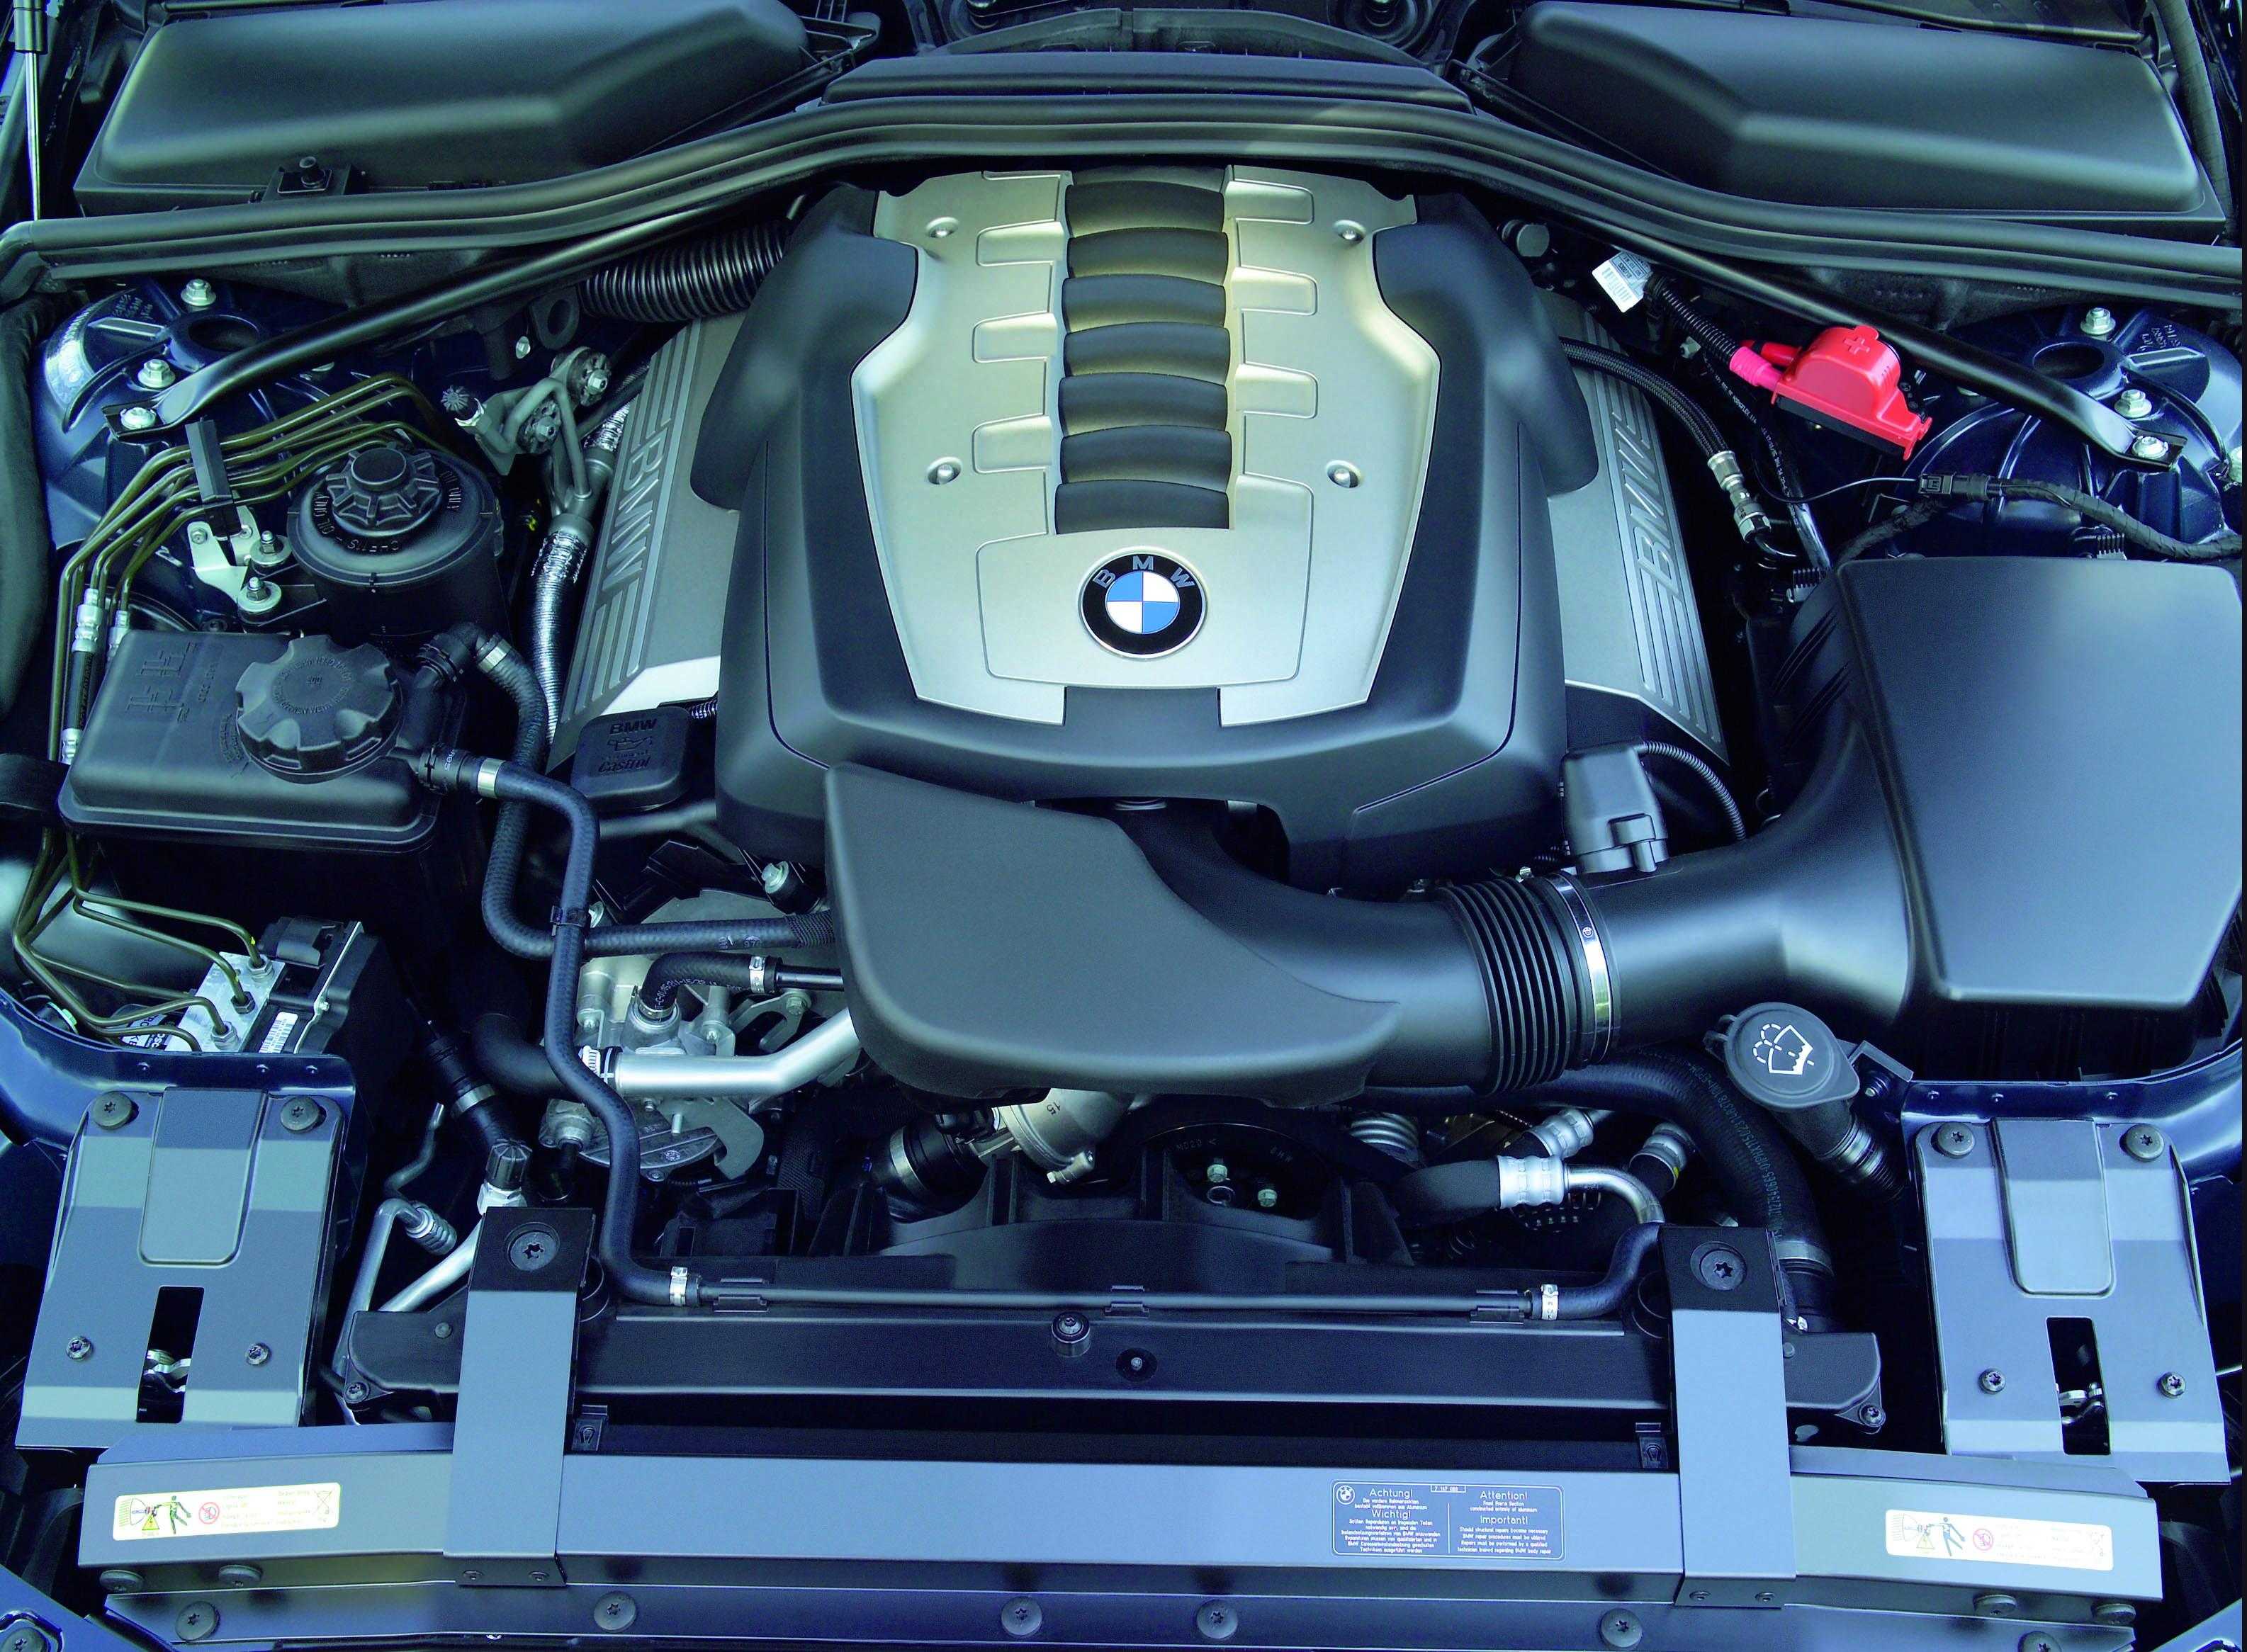 Bmw 650i Engine Diagram - Wiring Diagram Recent smell-common -  smell-common.cosavedereanapoli.it | 2008 Bmw 650 Engine Diagram |  | smell-common.cosavedereanapoli.it